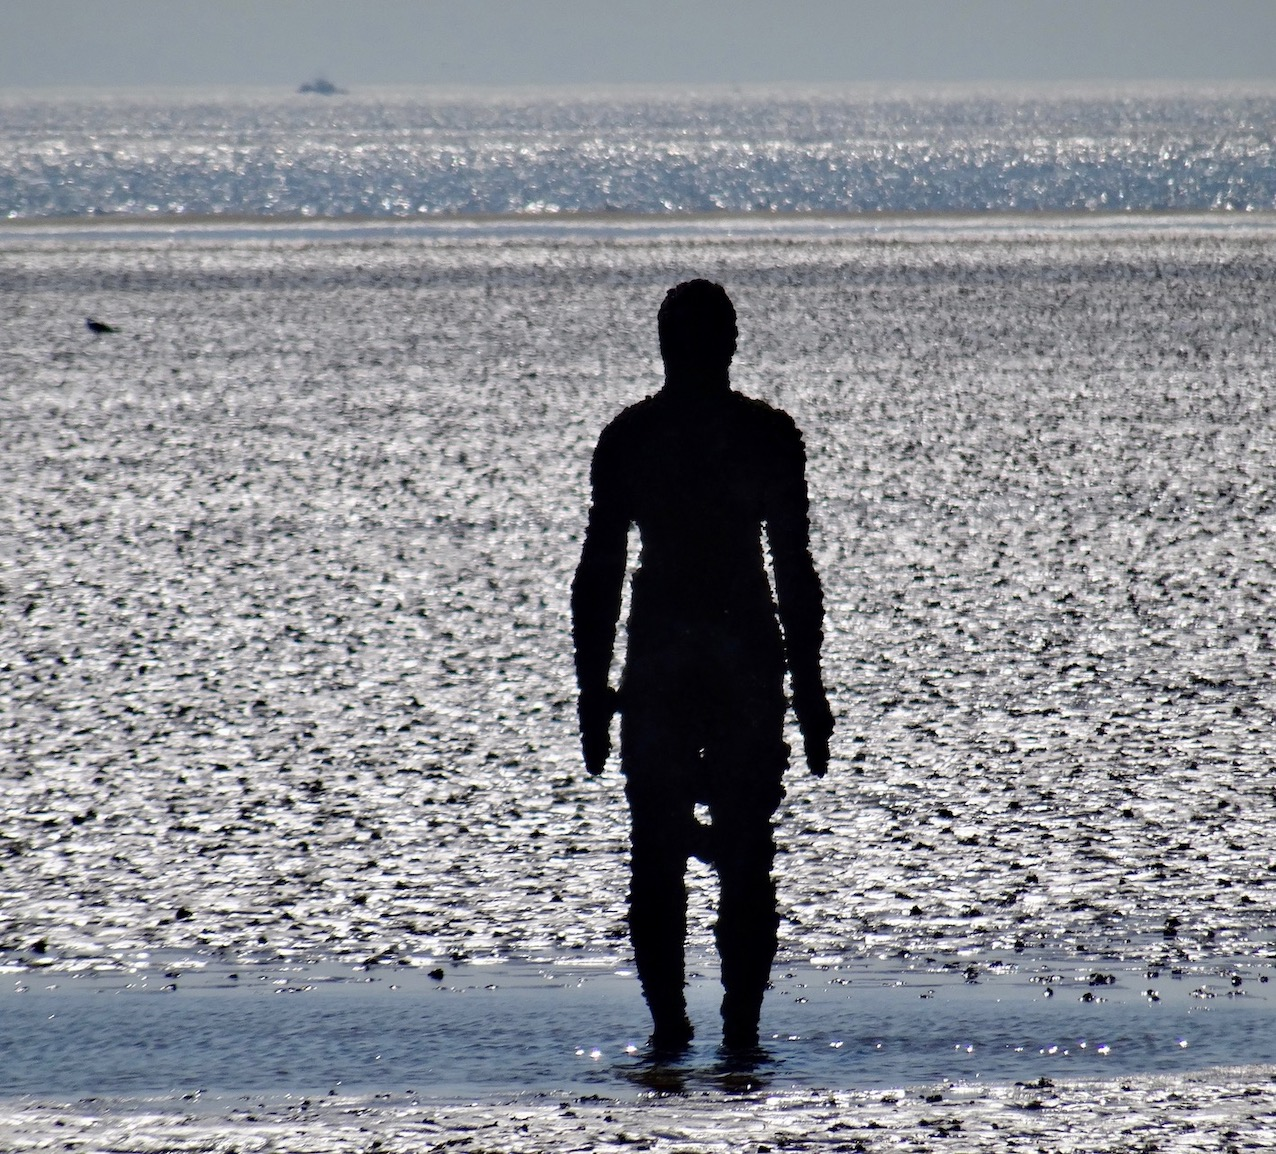 Statue in the Sand Antony Gormley Another Place Crosby Beach Liverpool.